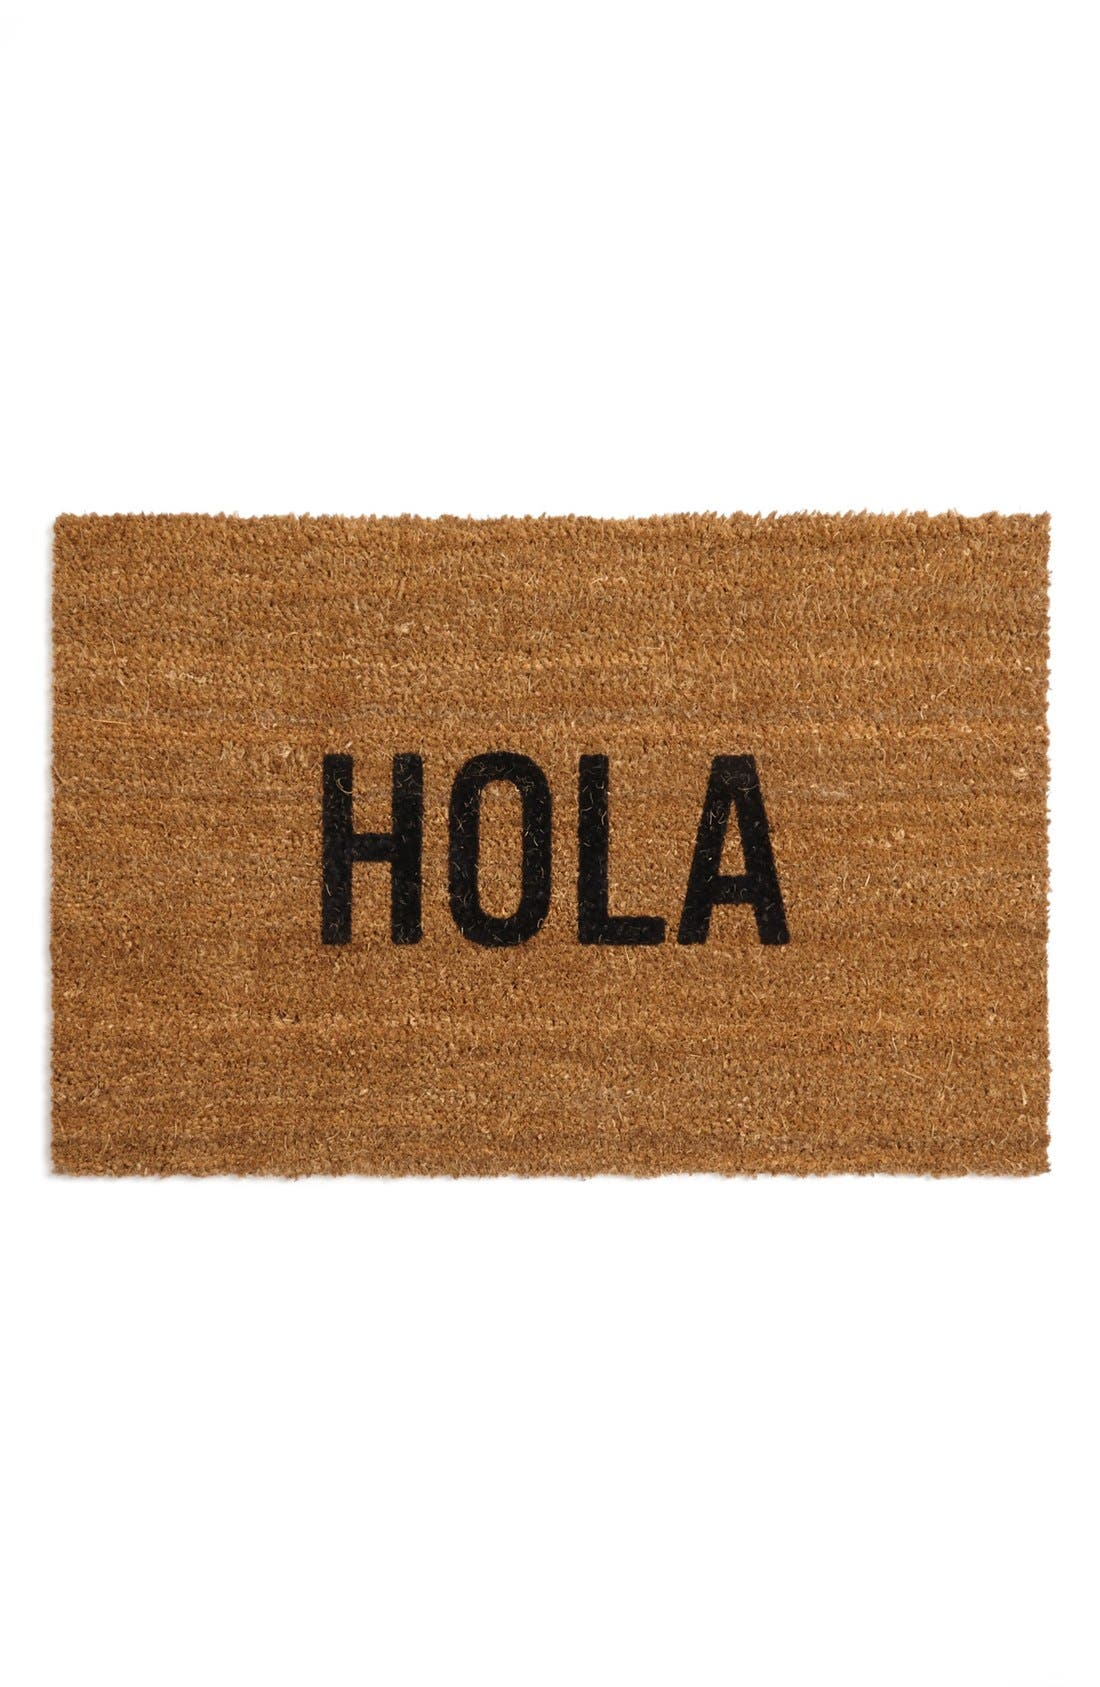 'Hola' Doormat,                         Main,                         color, BROWN